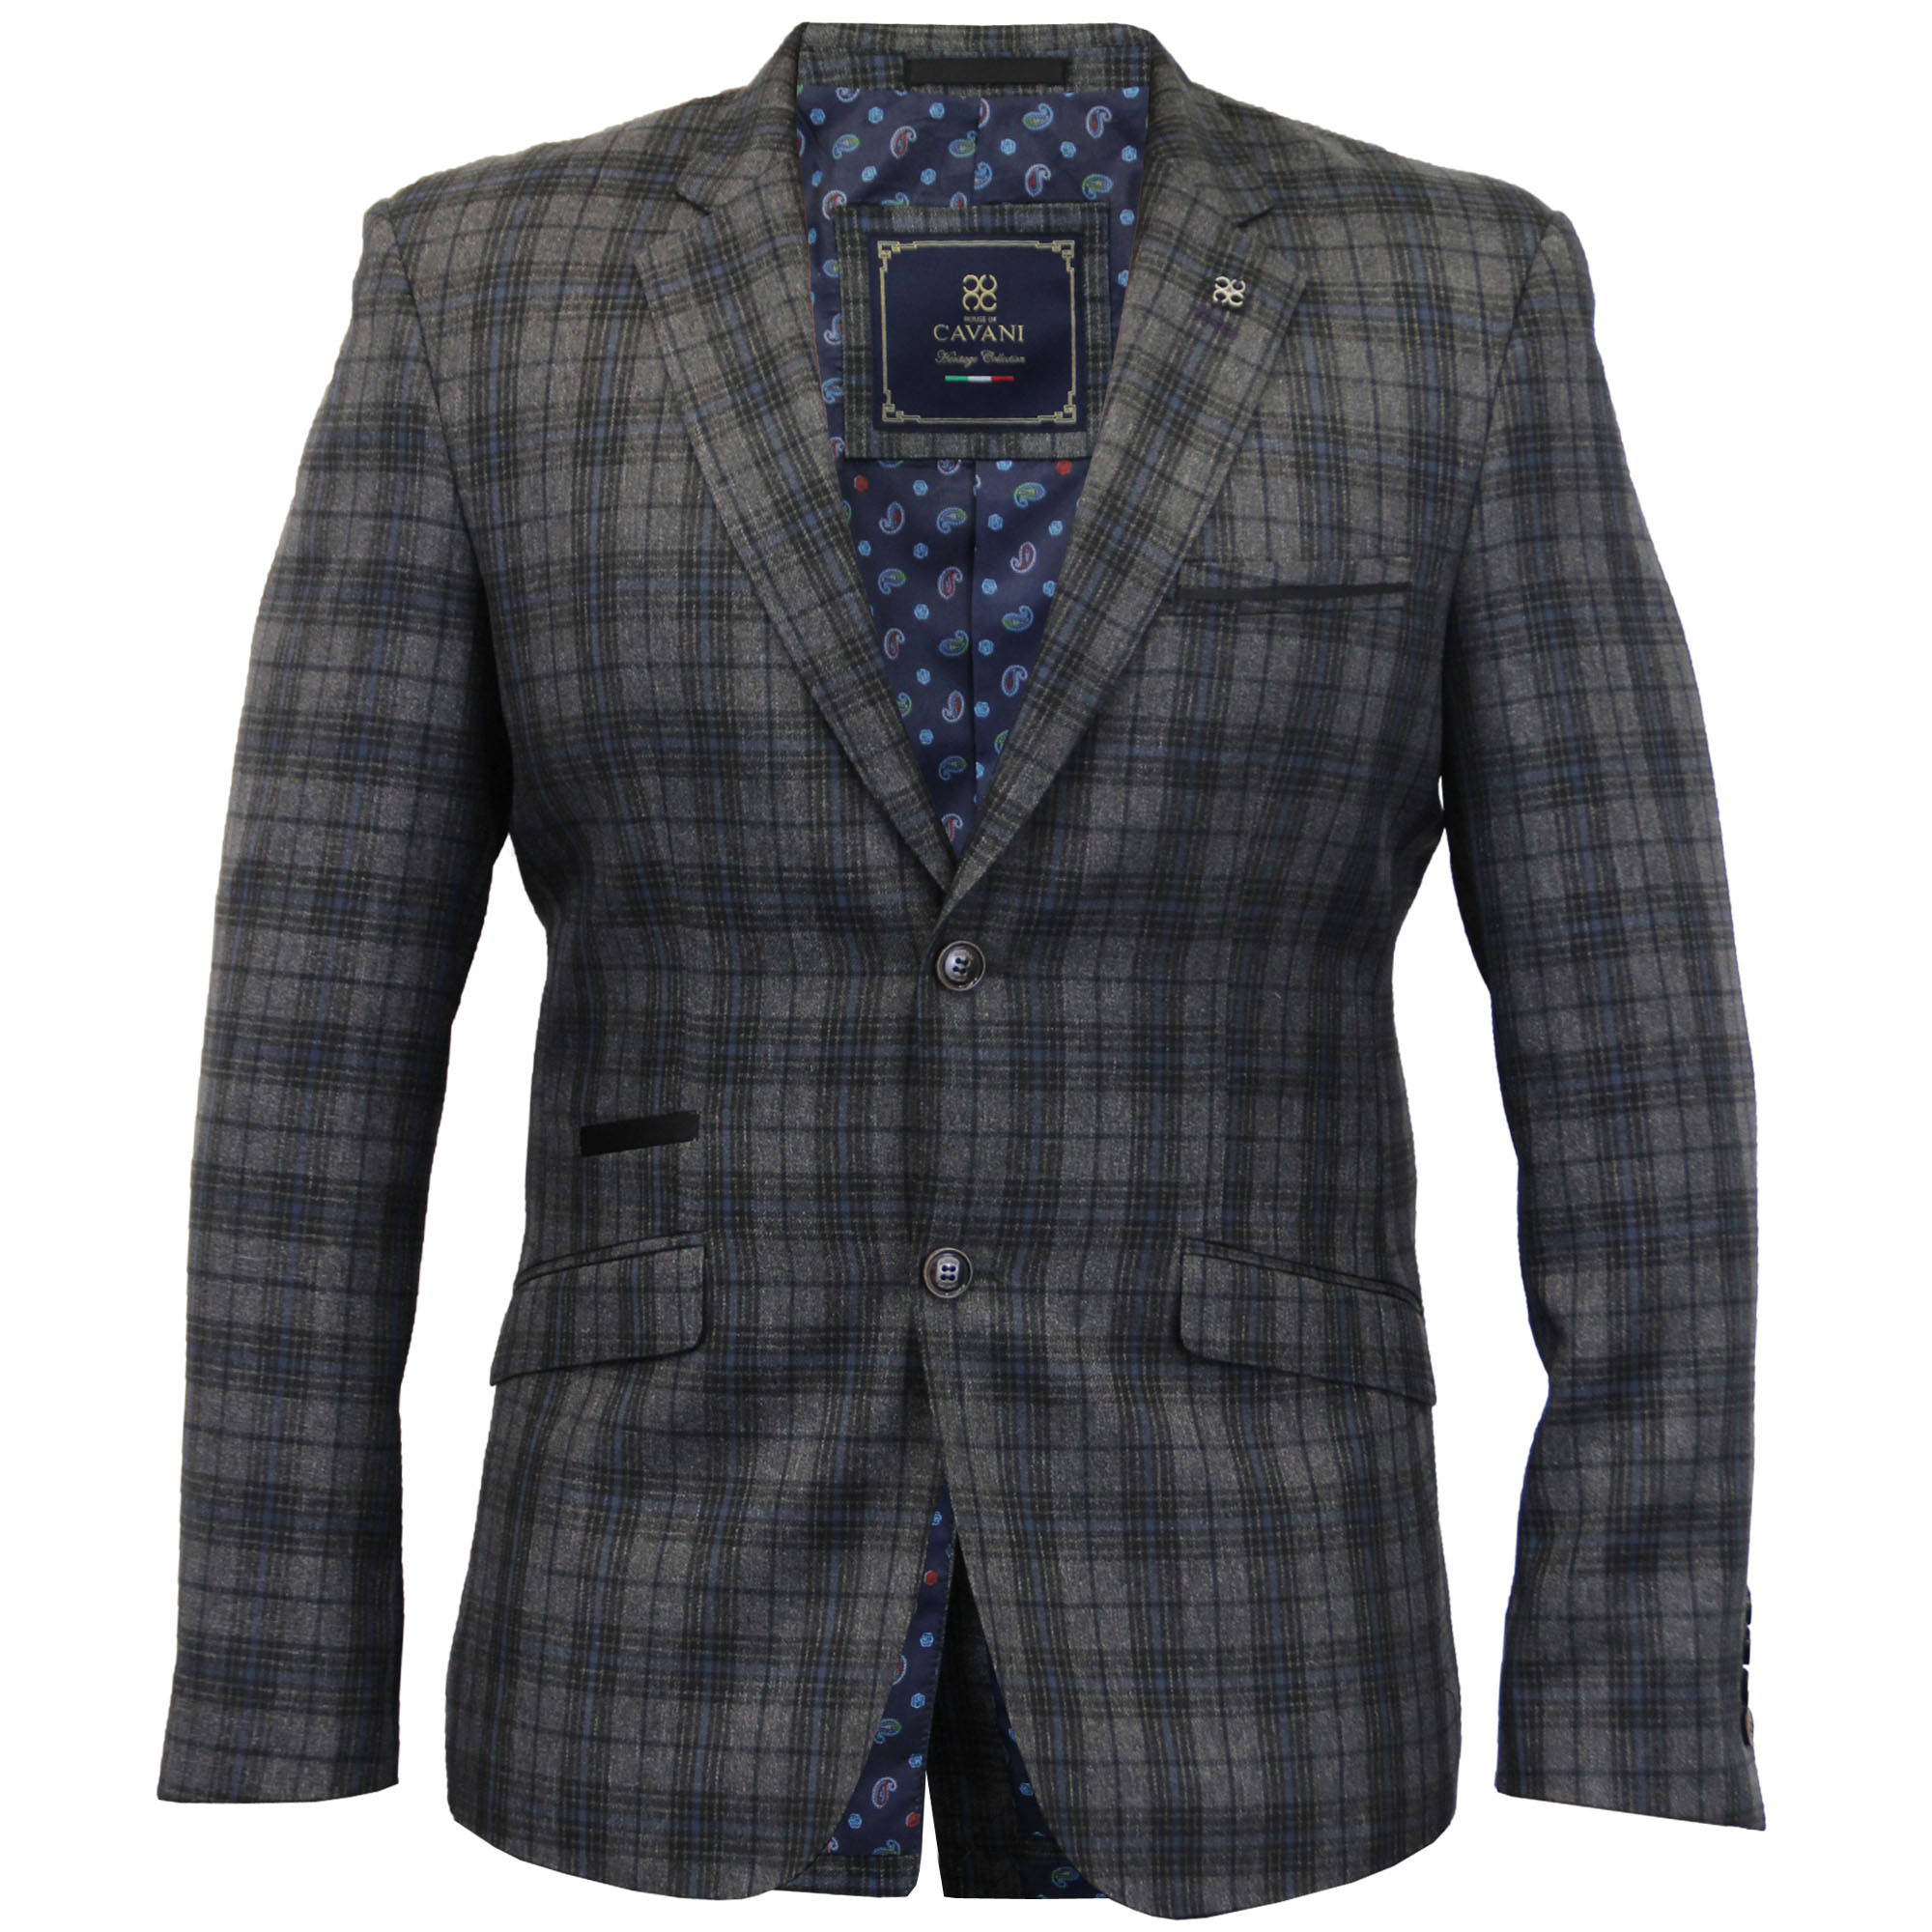 Blazers Jackets Mens: Mens Blazer Cavani Coat Dinner Suit Slim Fit Jacket Tartan